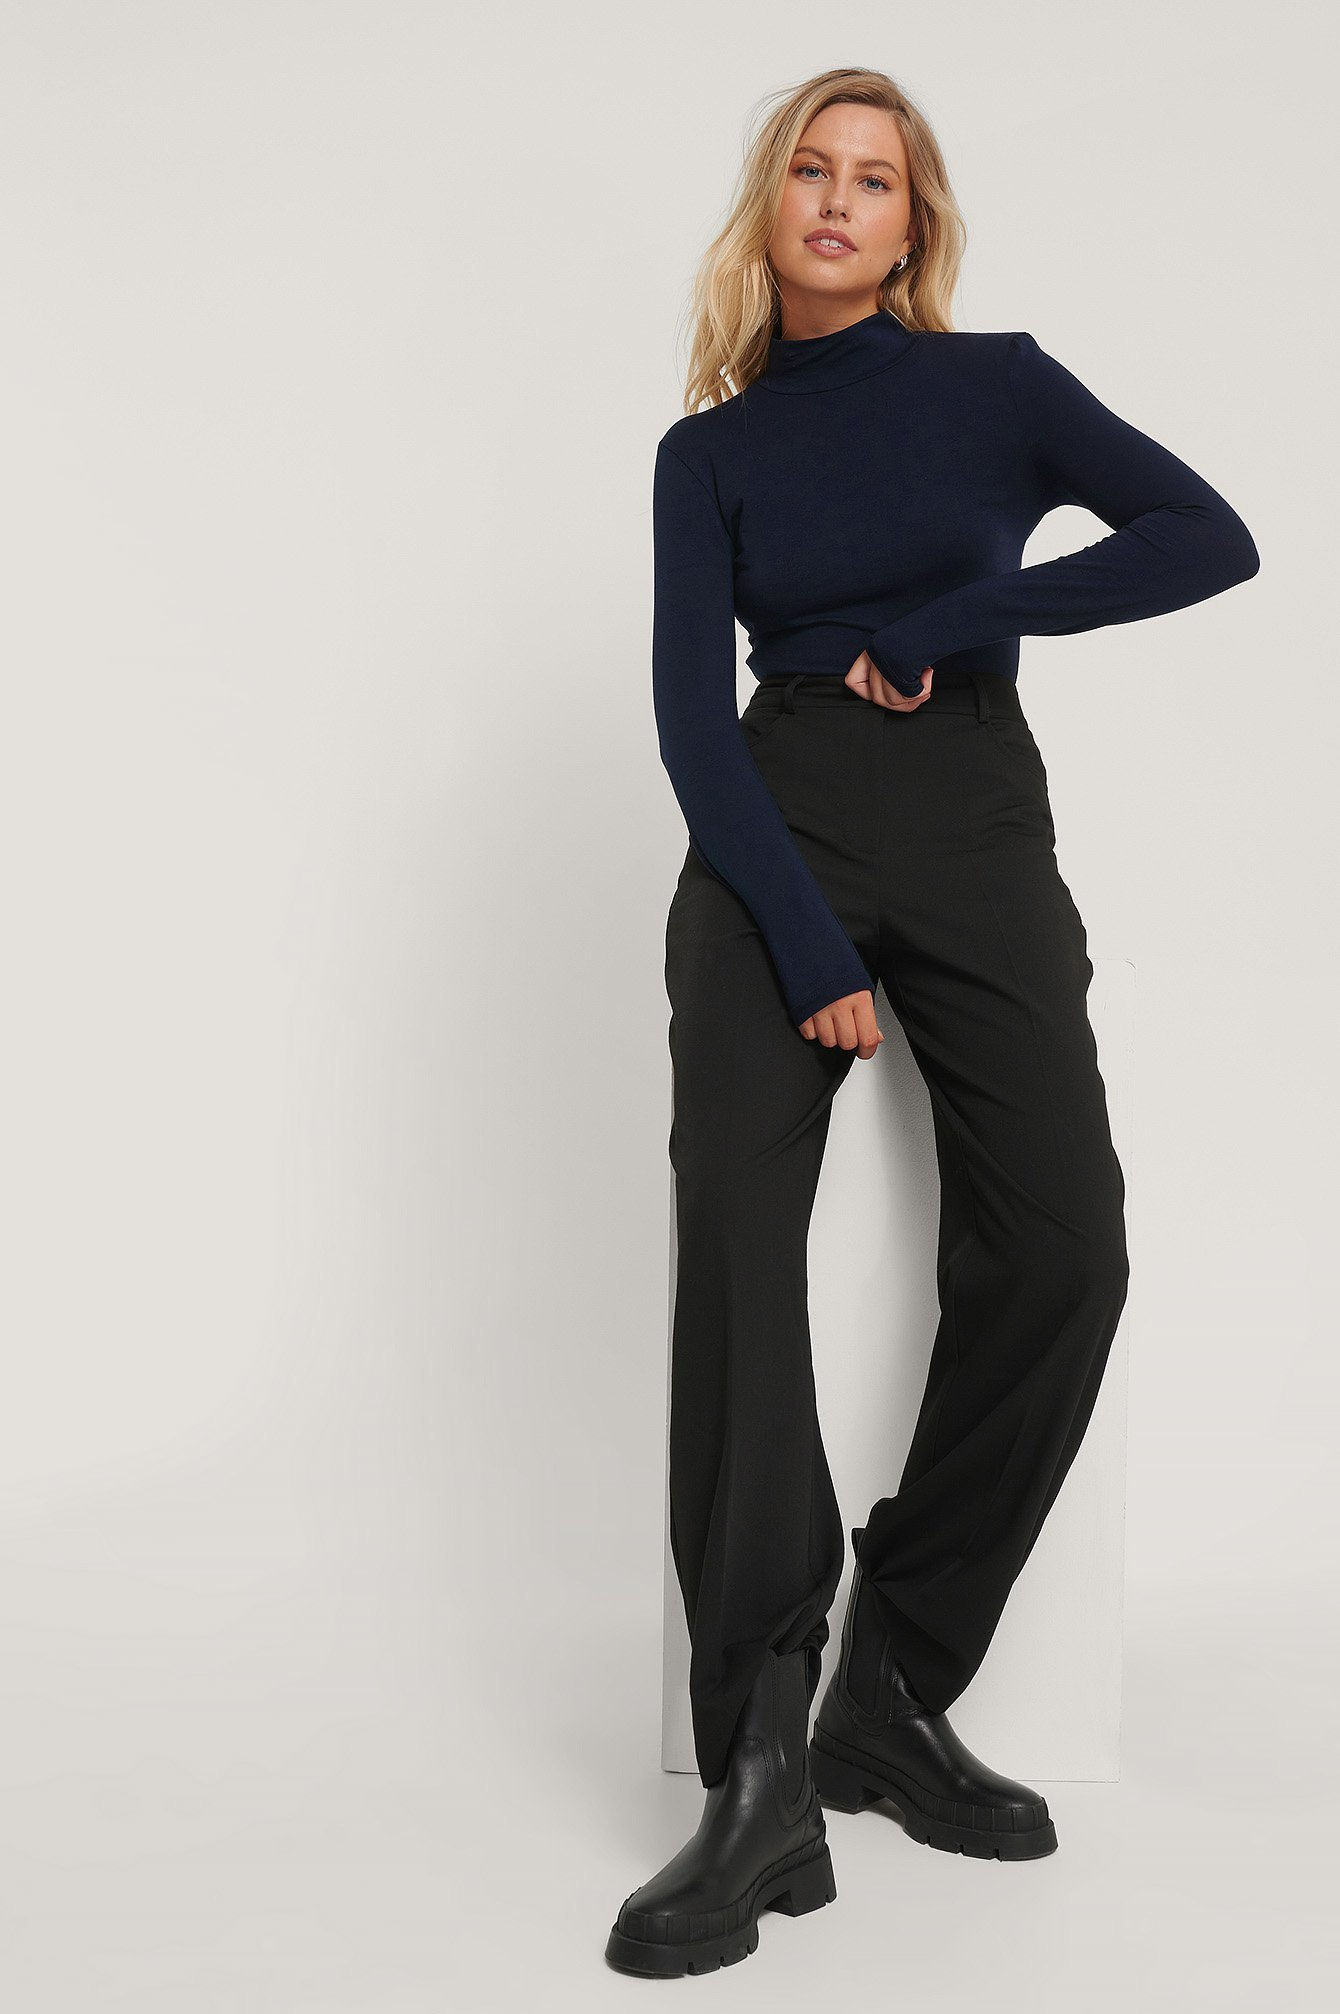 Vertical Collar Body Outfit.